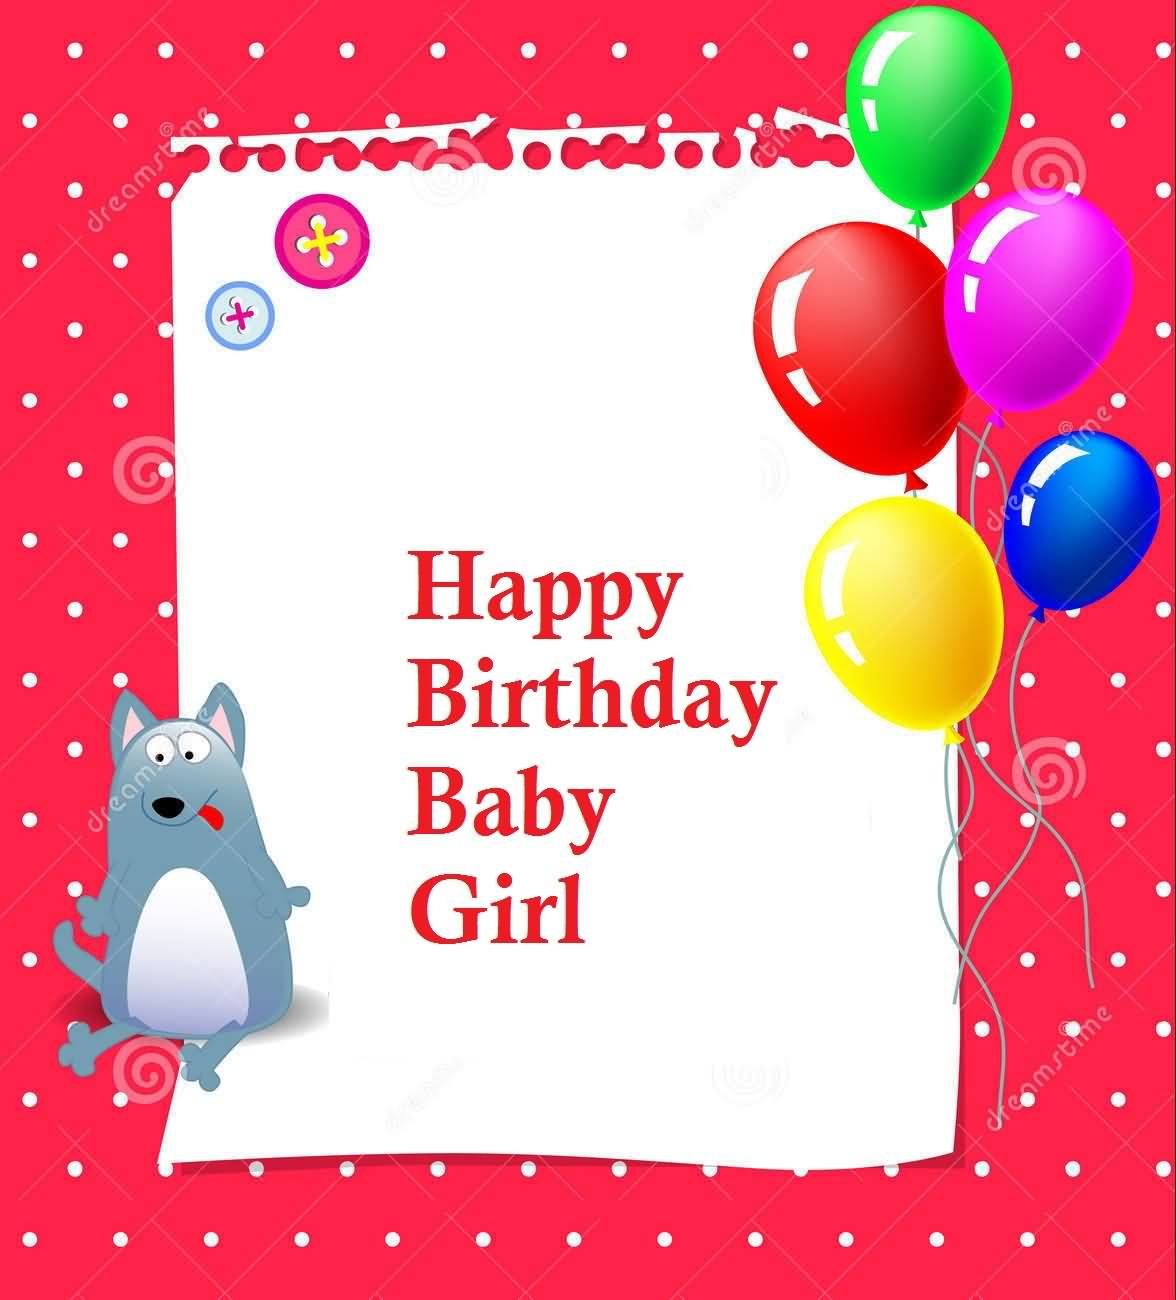 Happy birthday wishes for a baby boy happy birthday little boy top 37 sweet baby girl birthday greetings cards wishes kristyandbryce Gallery